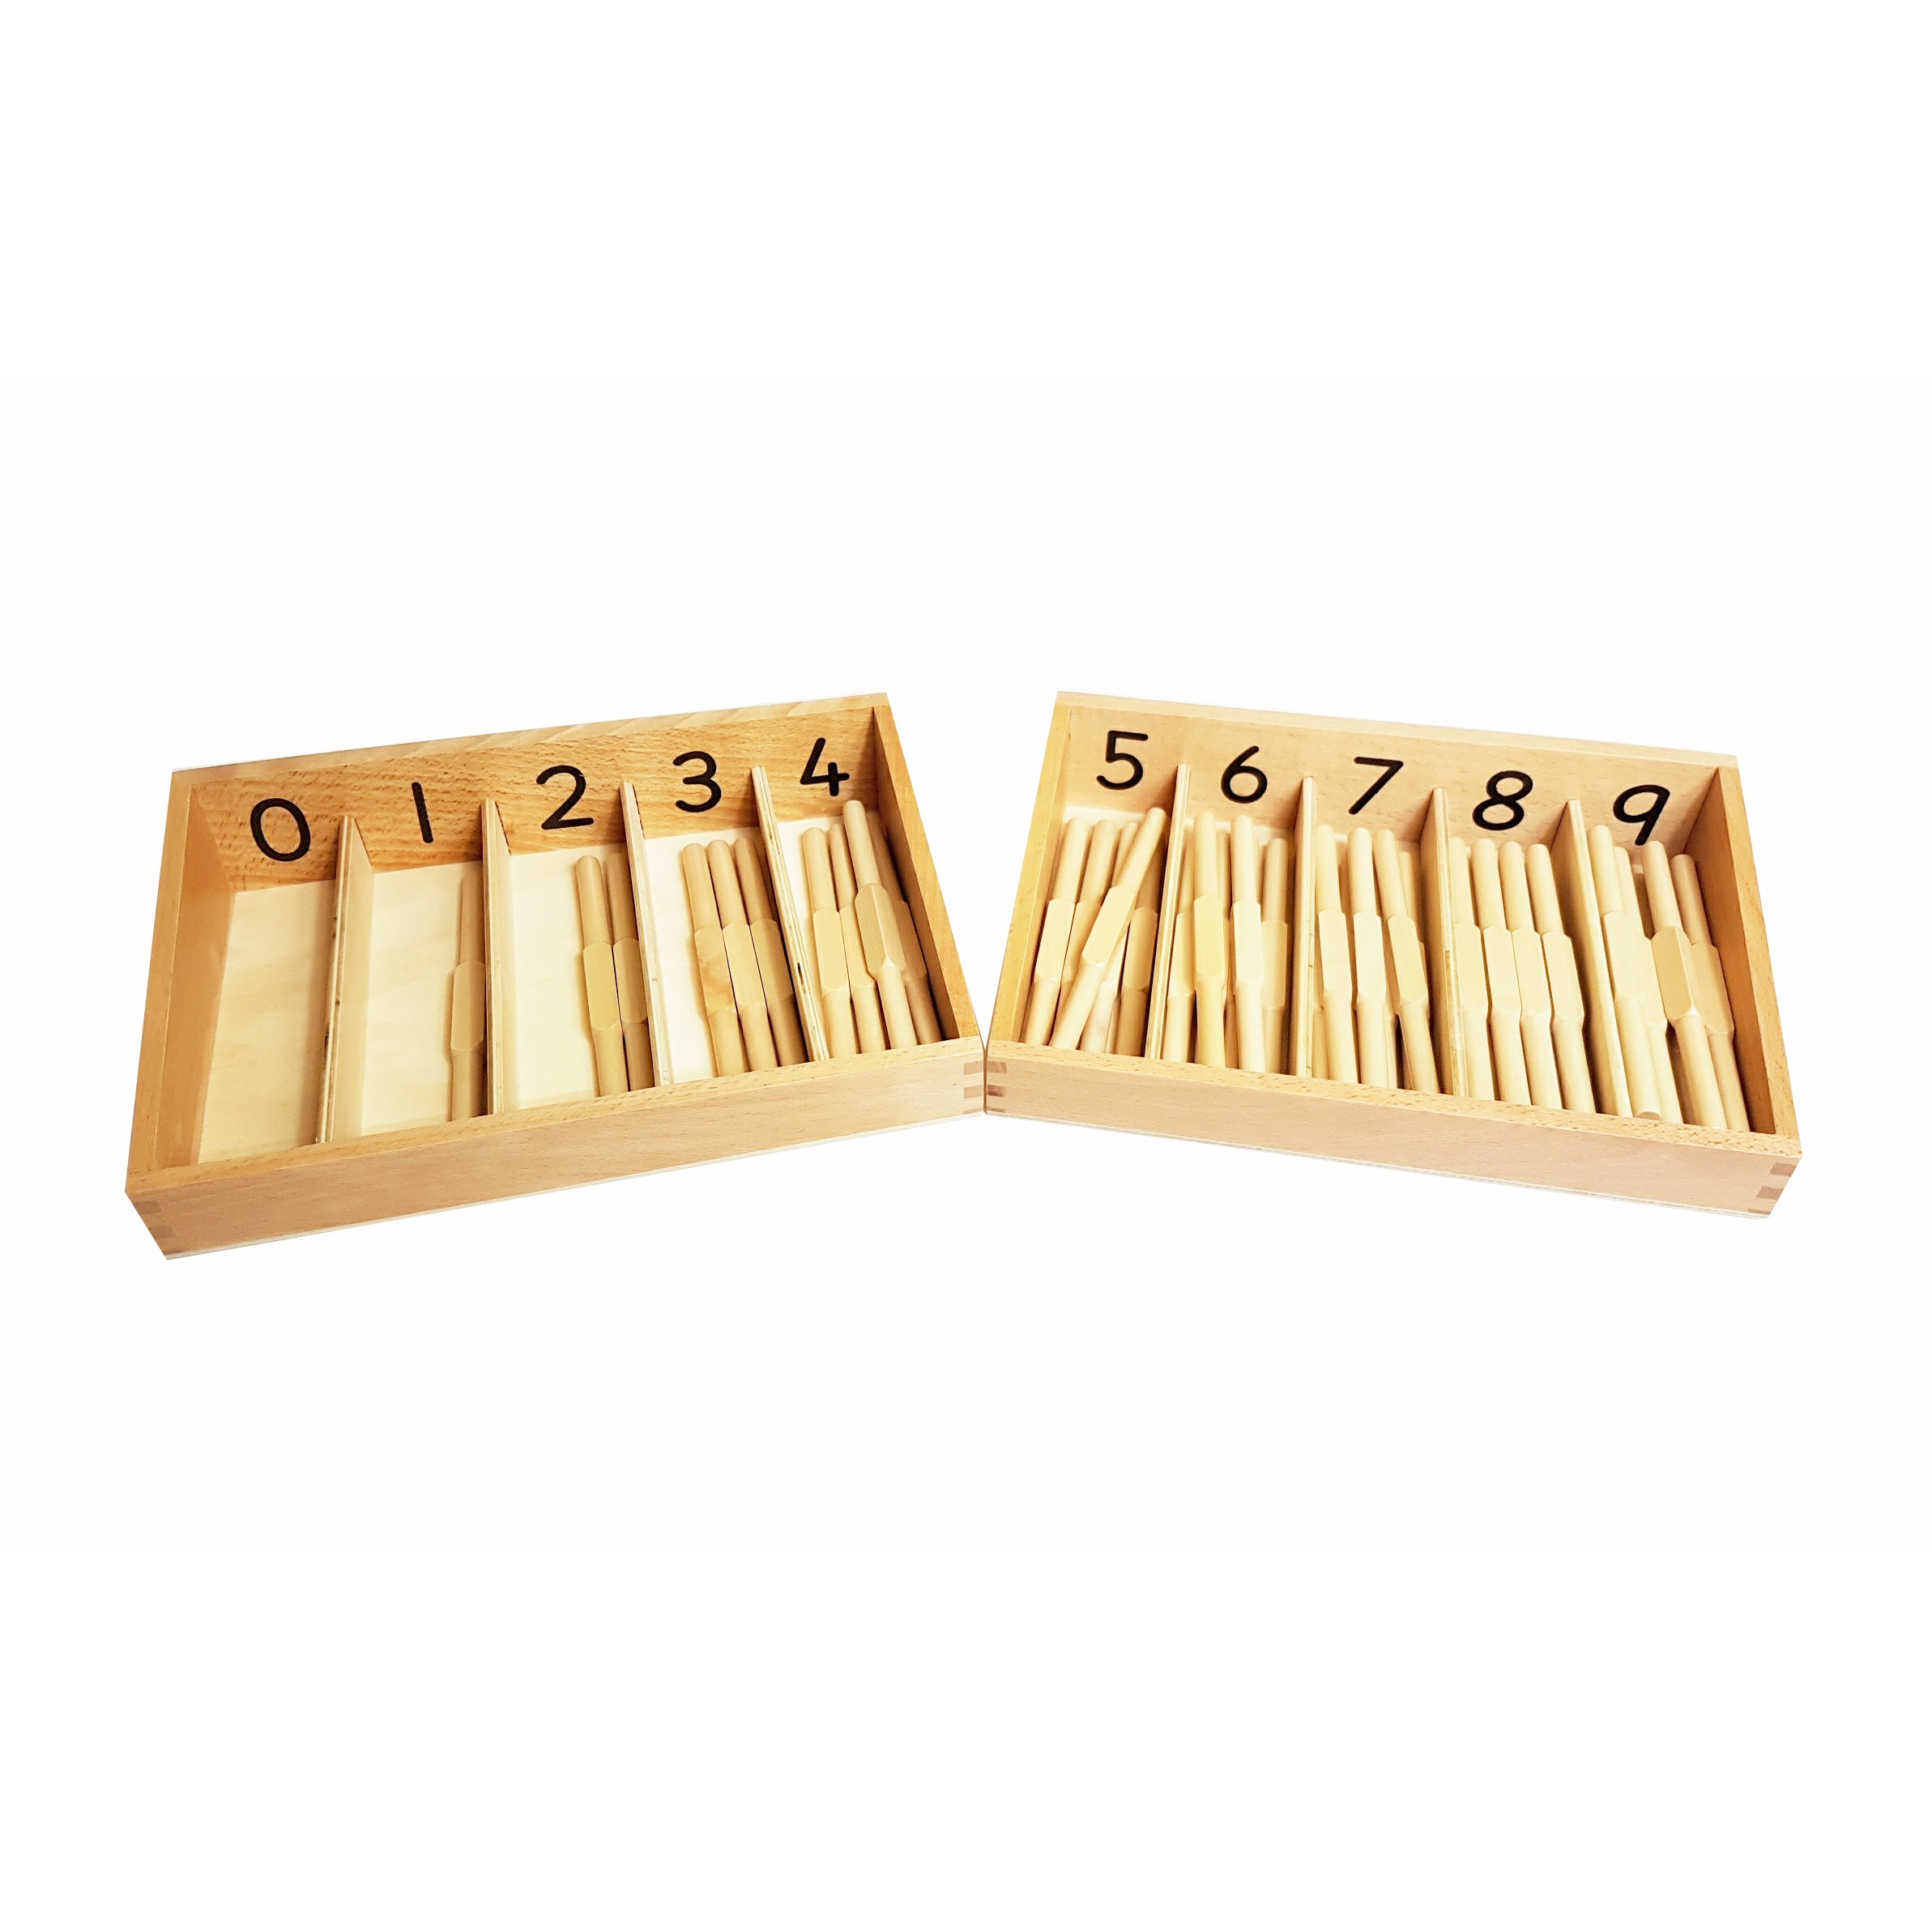 Montessori Spindle Boxes 0-4 and 5-9